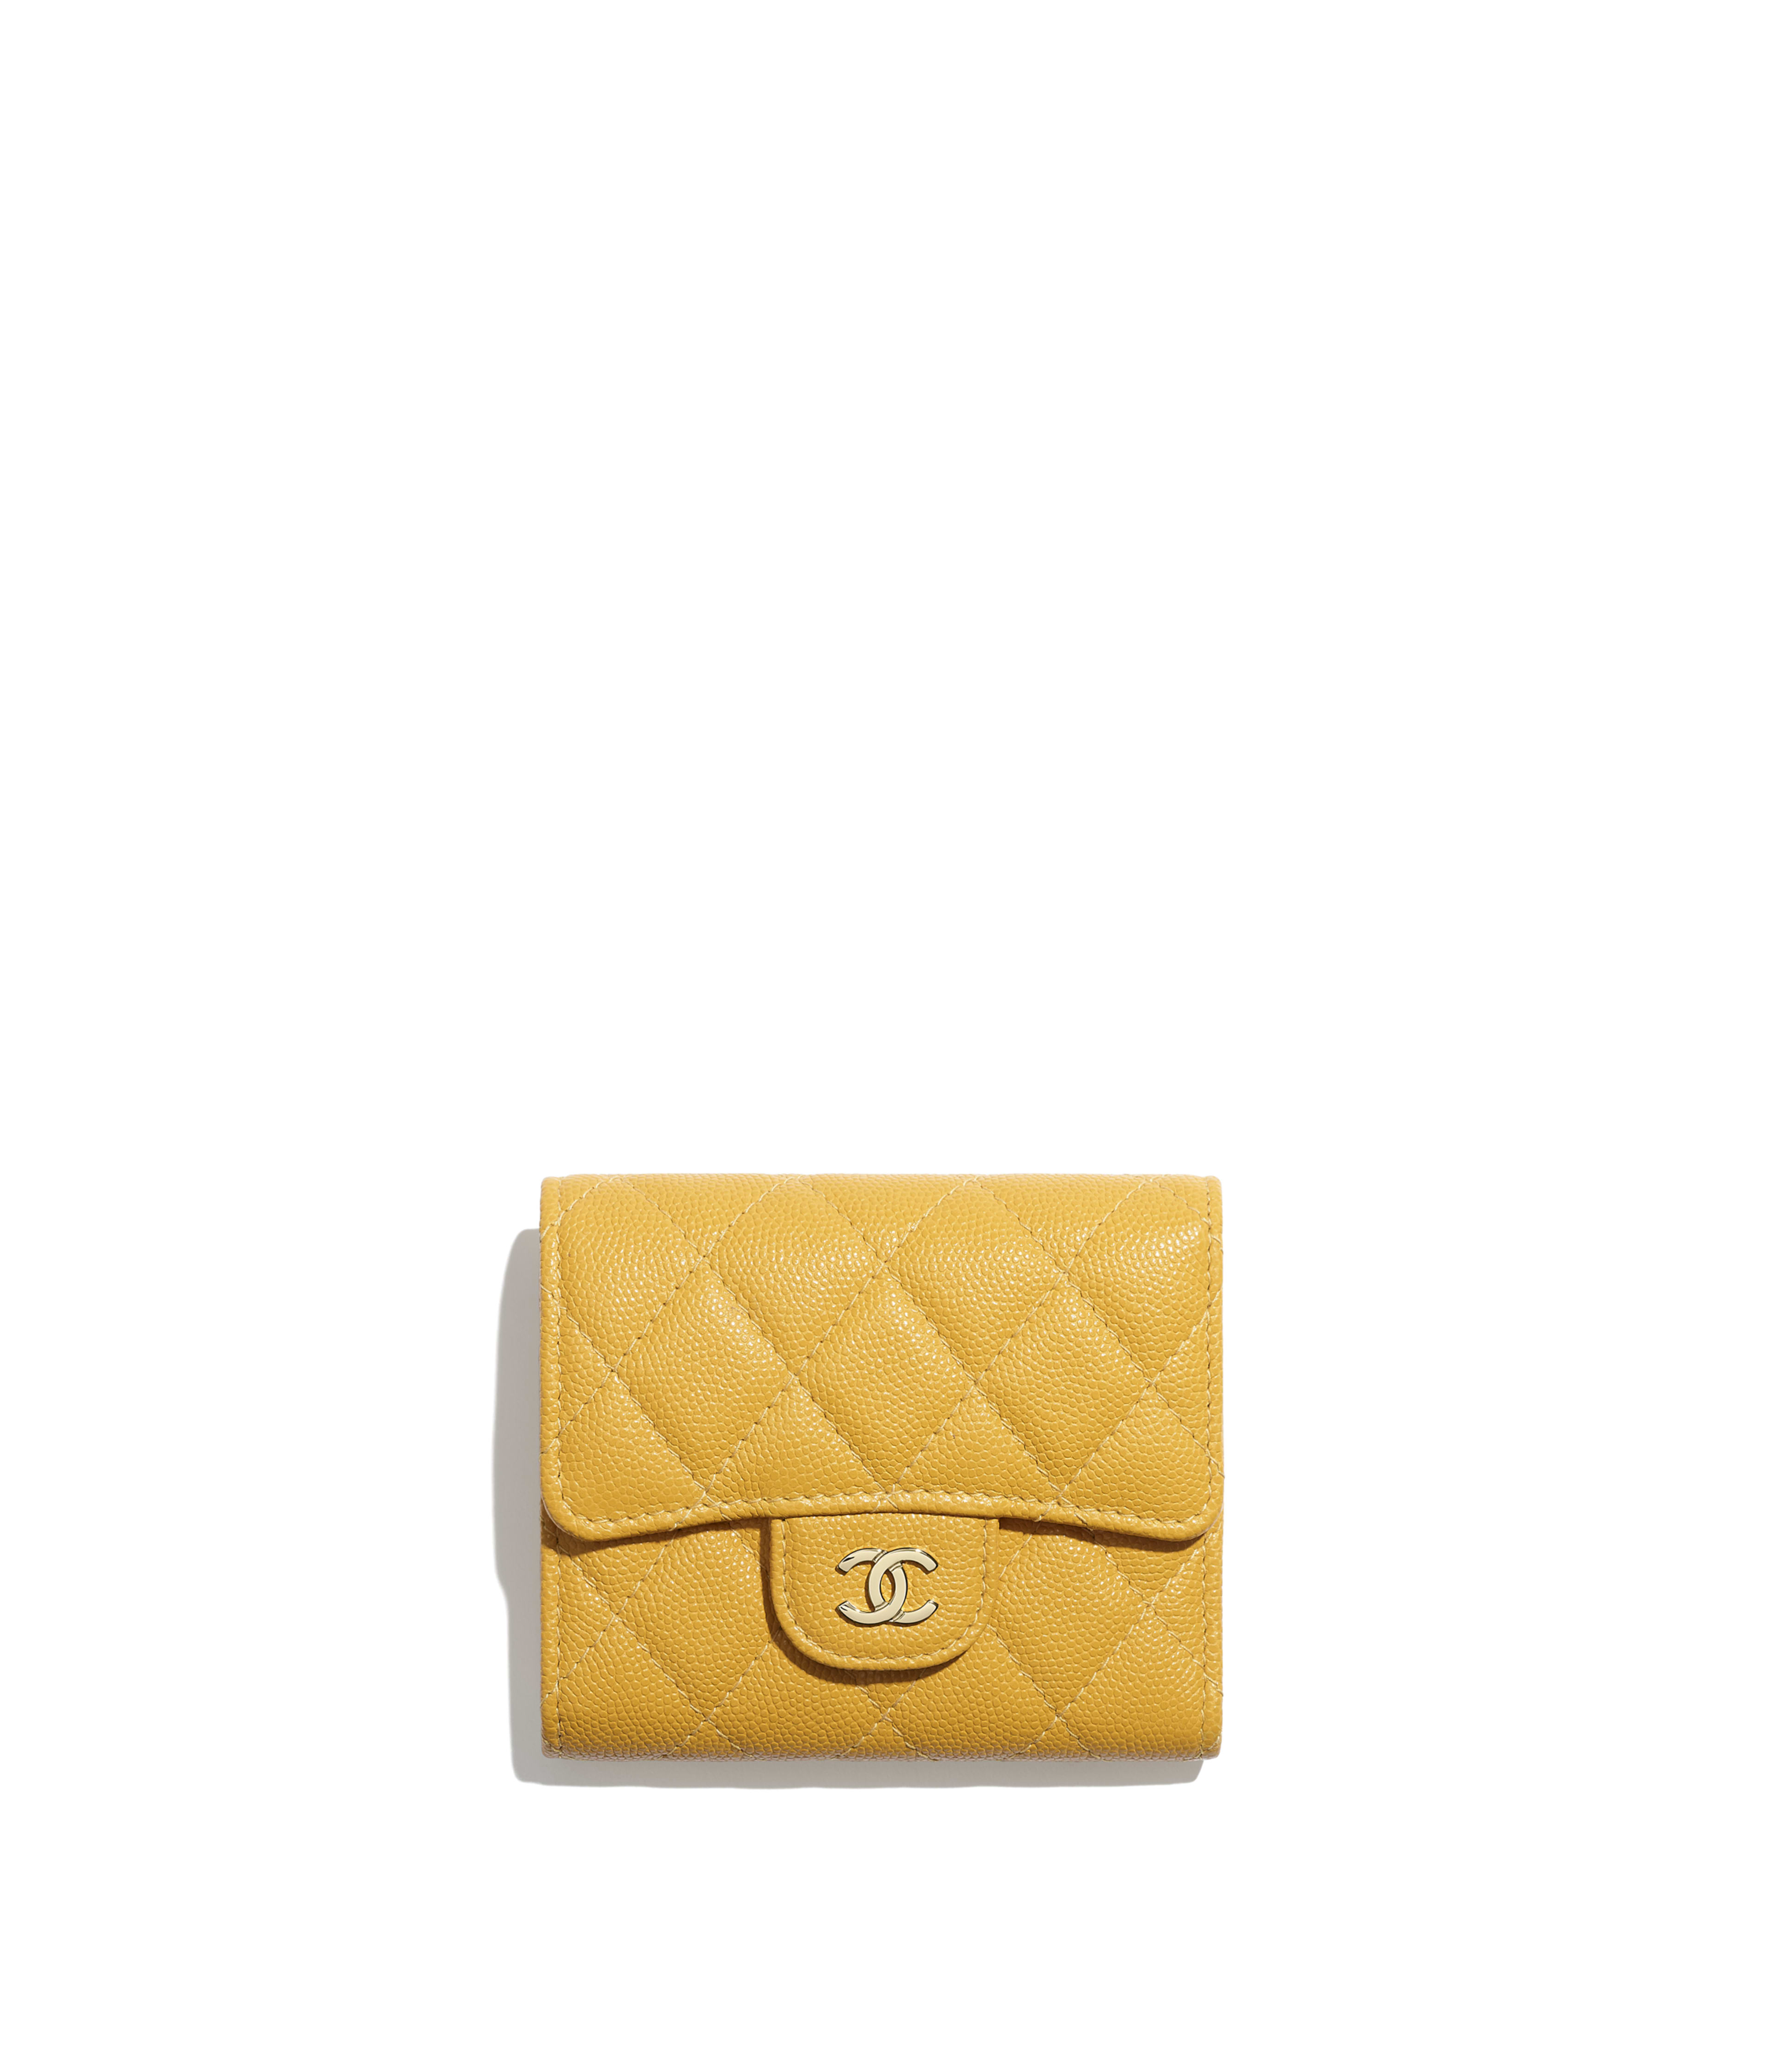 8bc95394ba3a Classic Small Flap Wallet Grained Calfskin & Gold-Tone Metal, Yellow Ref.  A81900Y333520B922